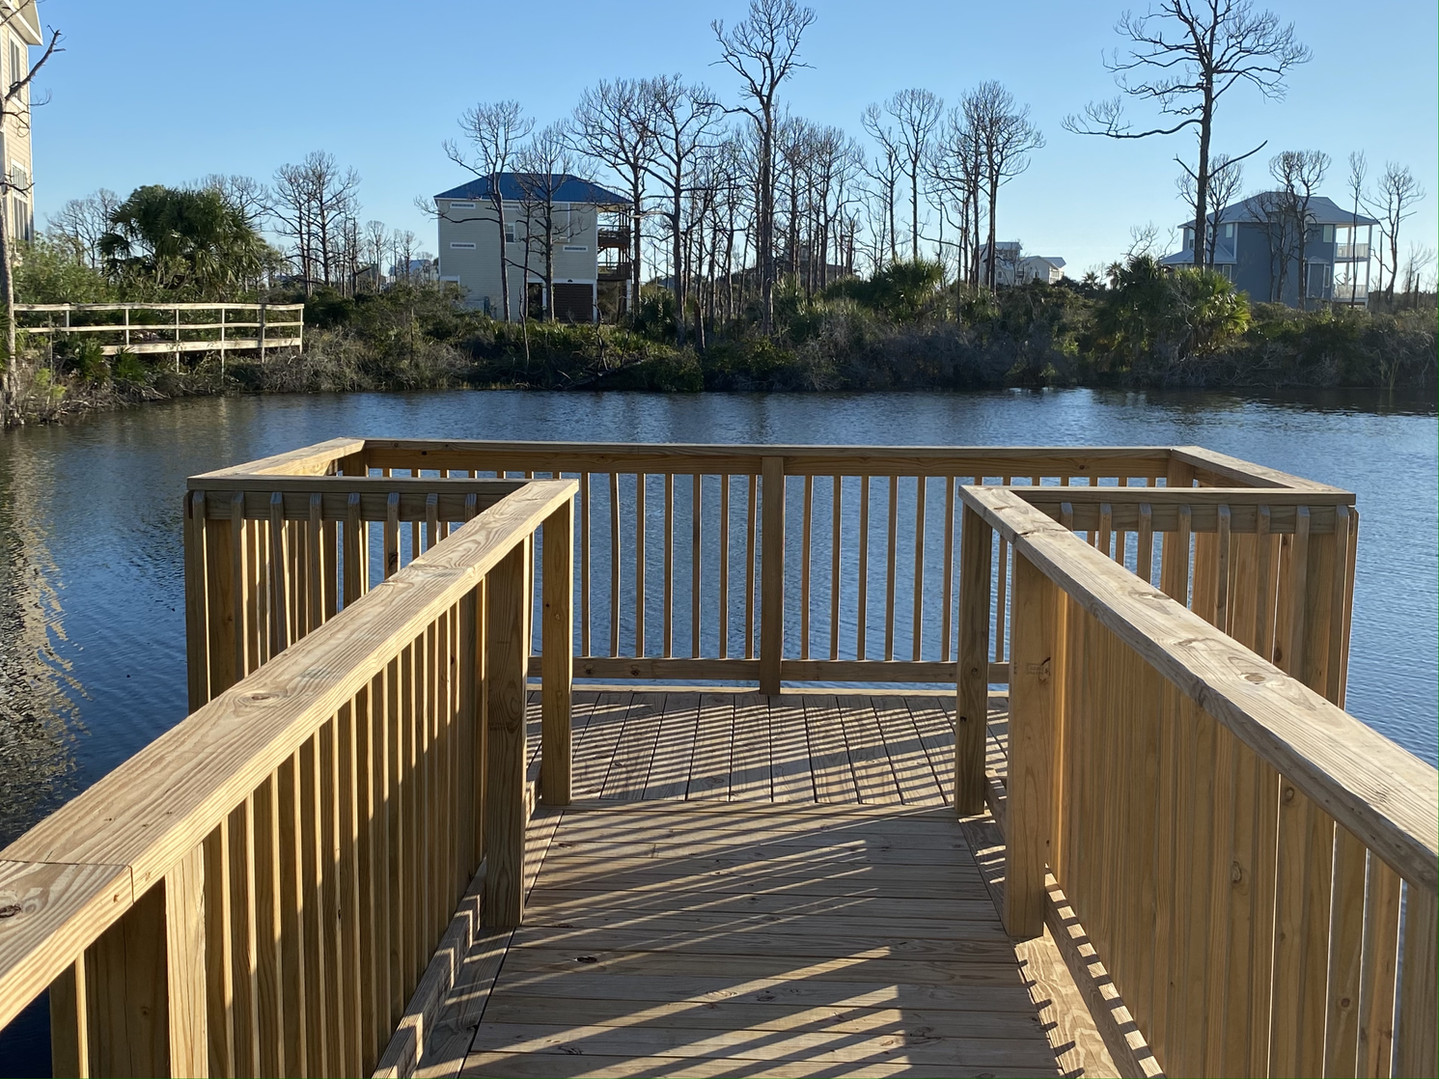 Boardwalk for fishing pond